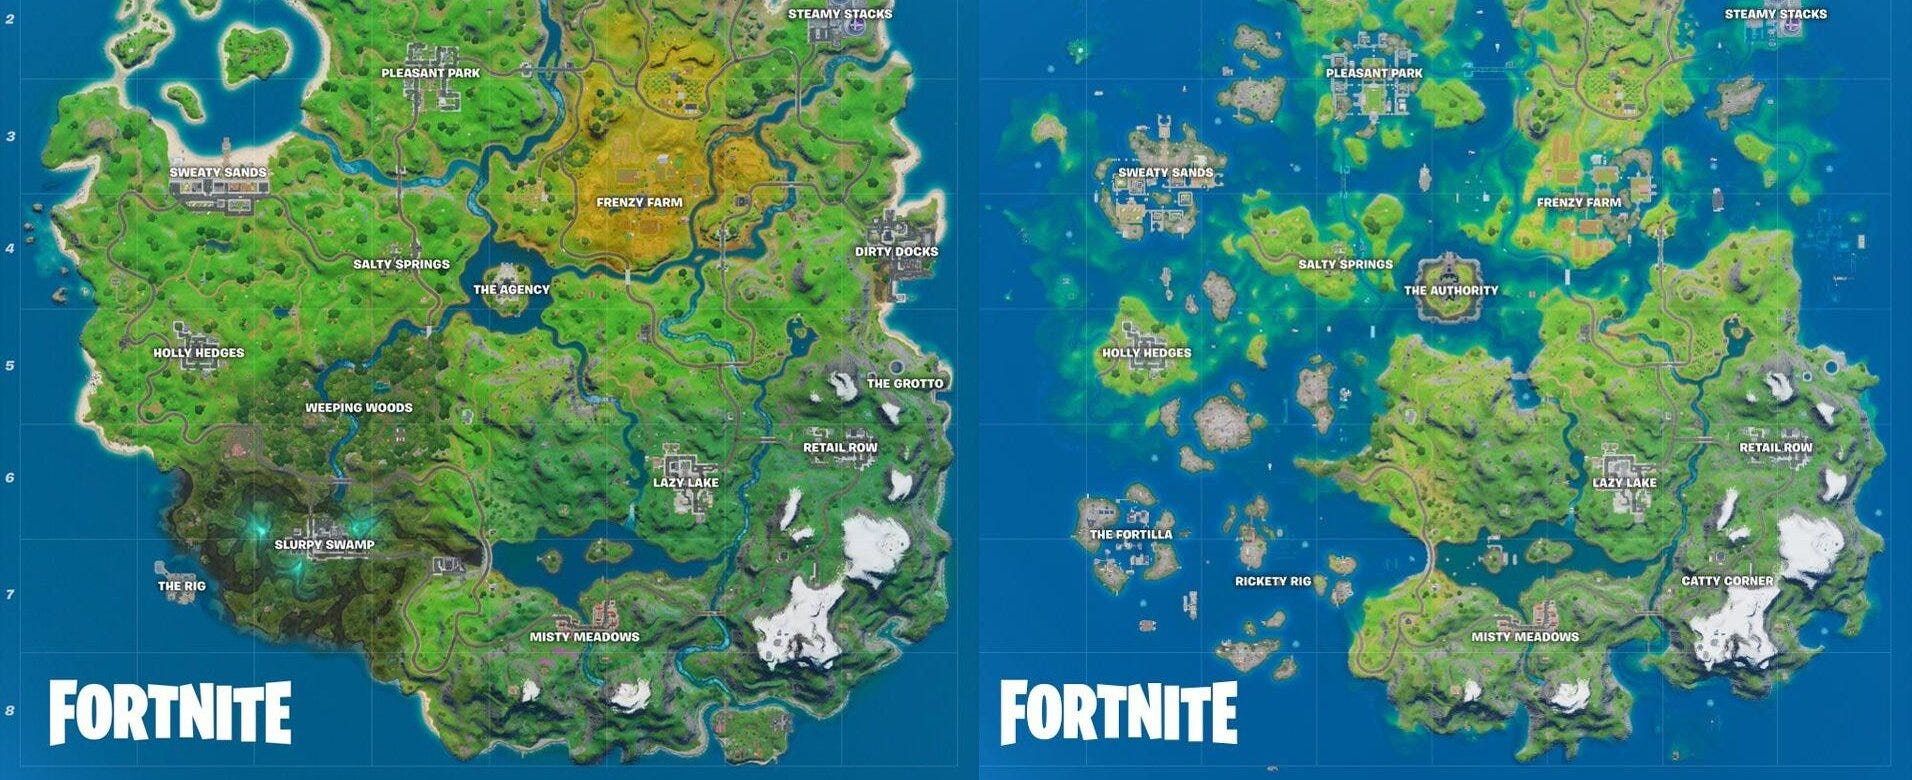 What do you think of the new Fortnite maps?